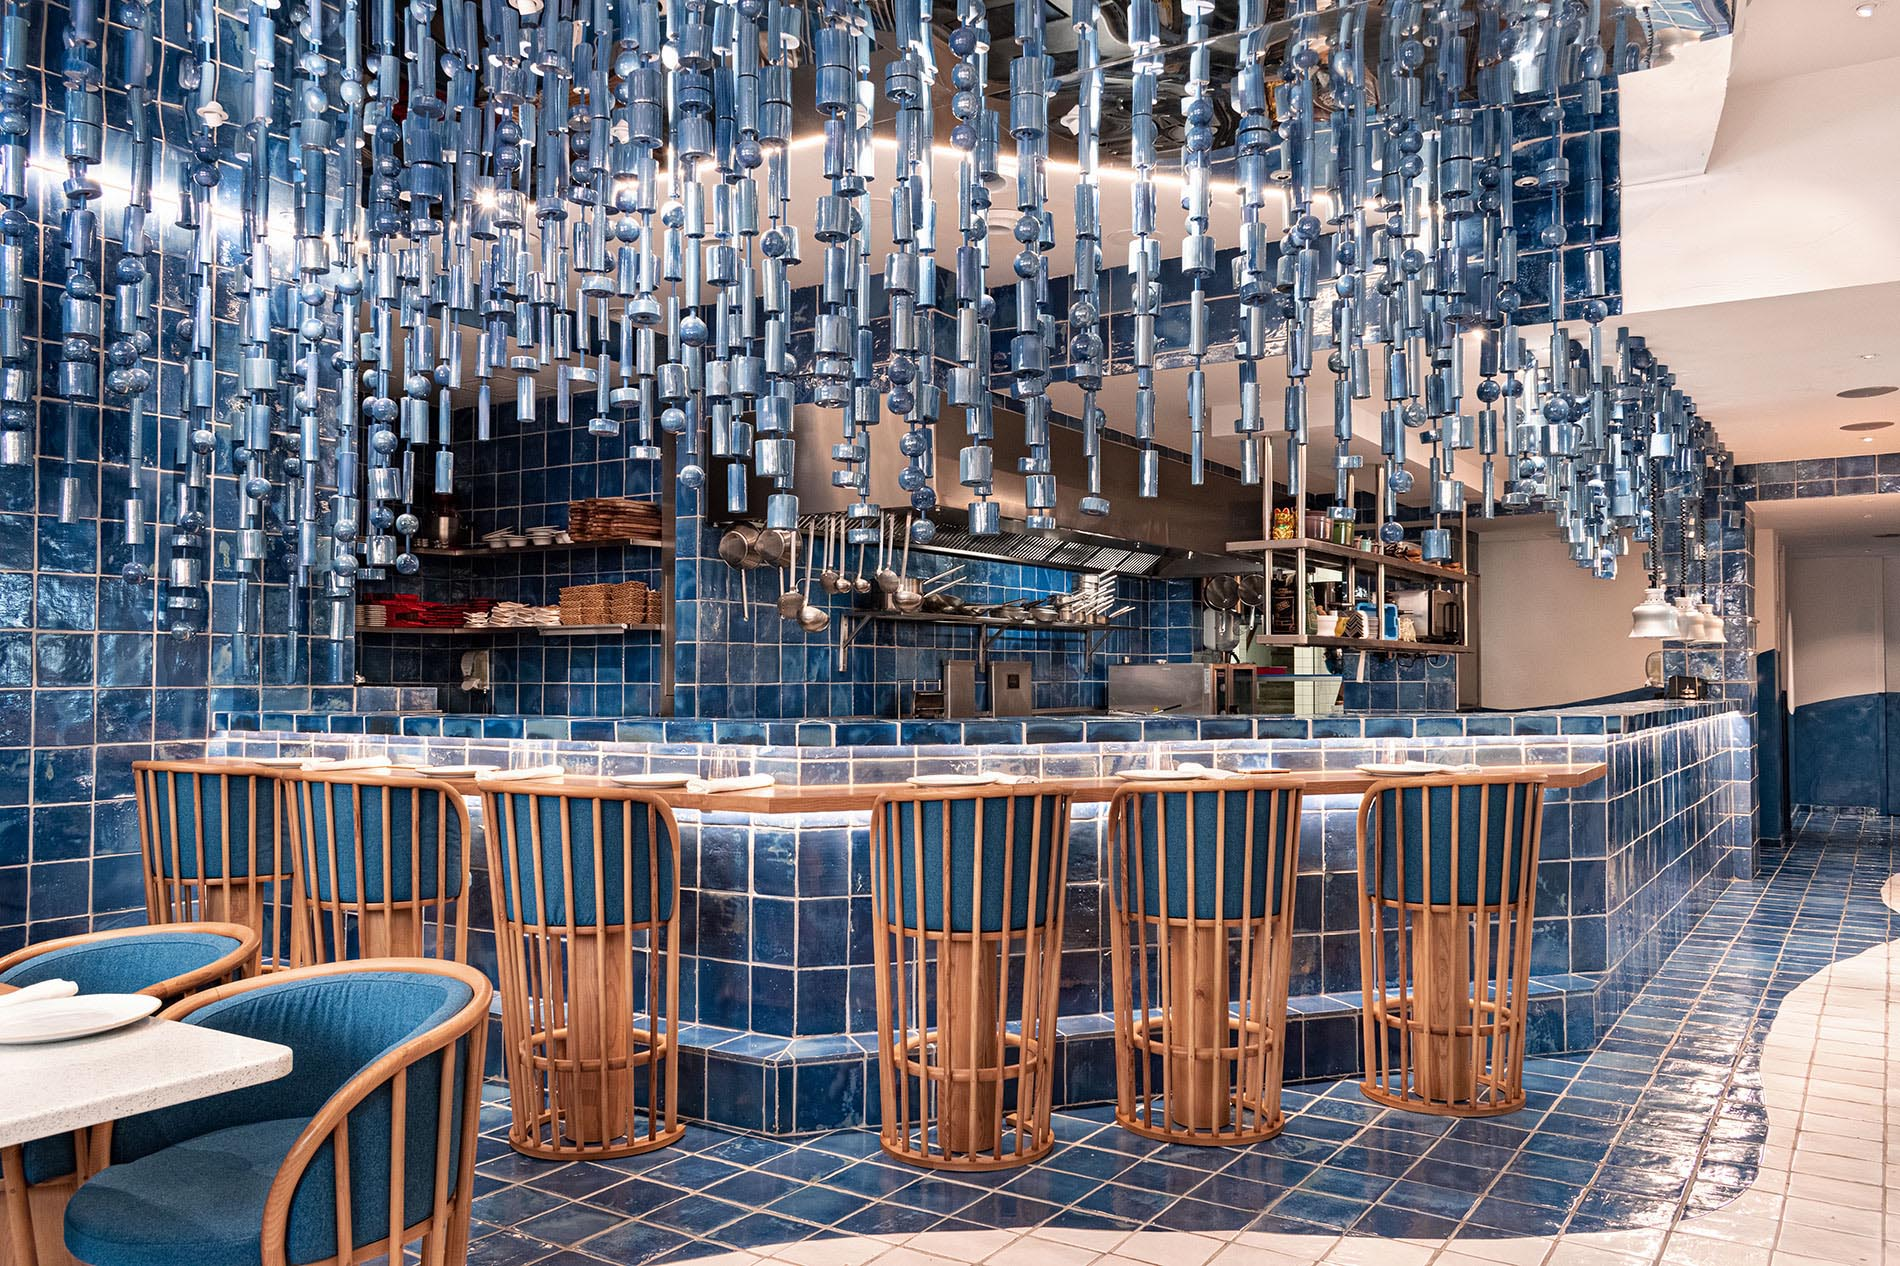 Masquespacio Have Designed A Restaurant Interior Inspired By The Sea And The Shape Of Waves